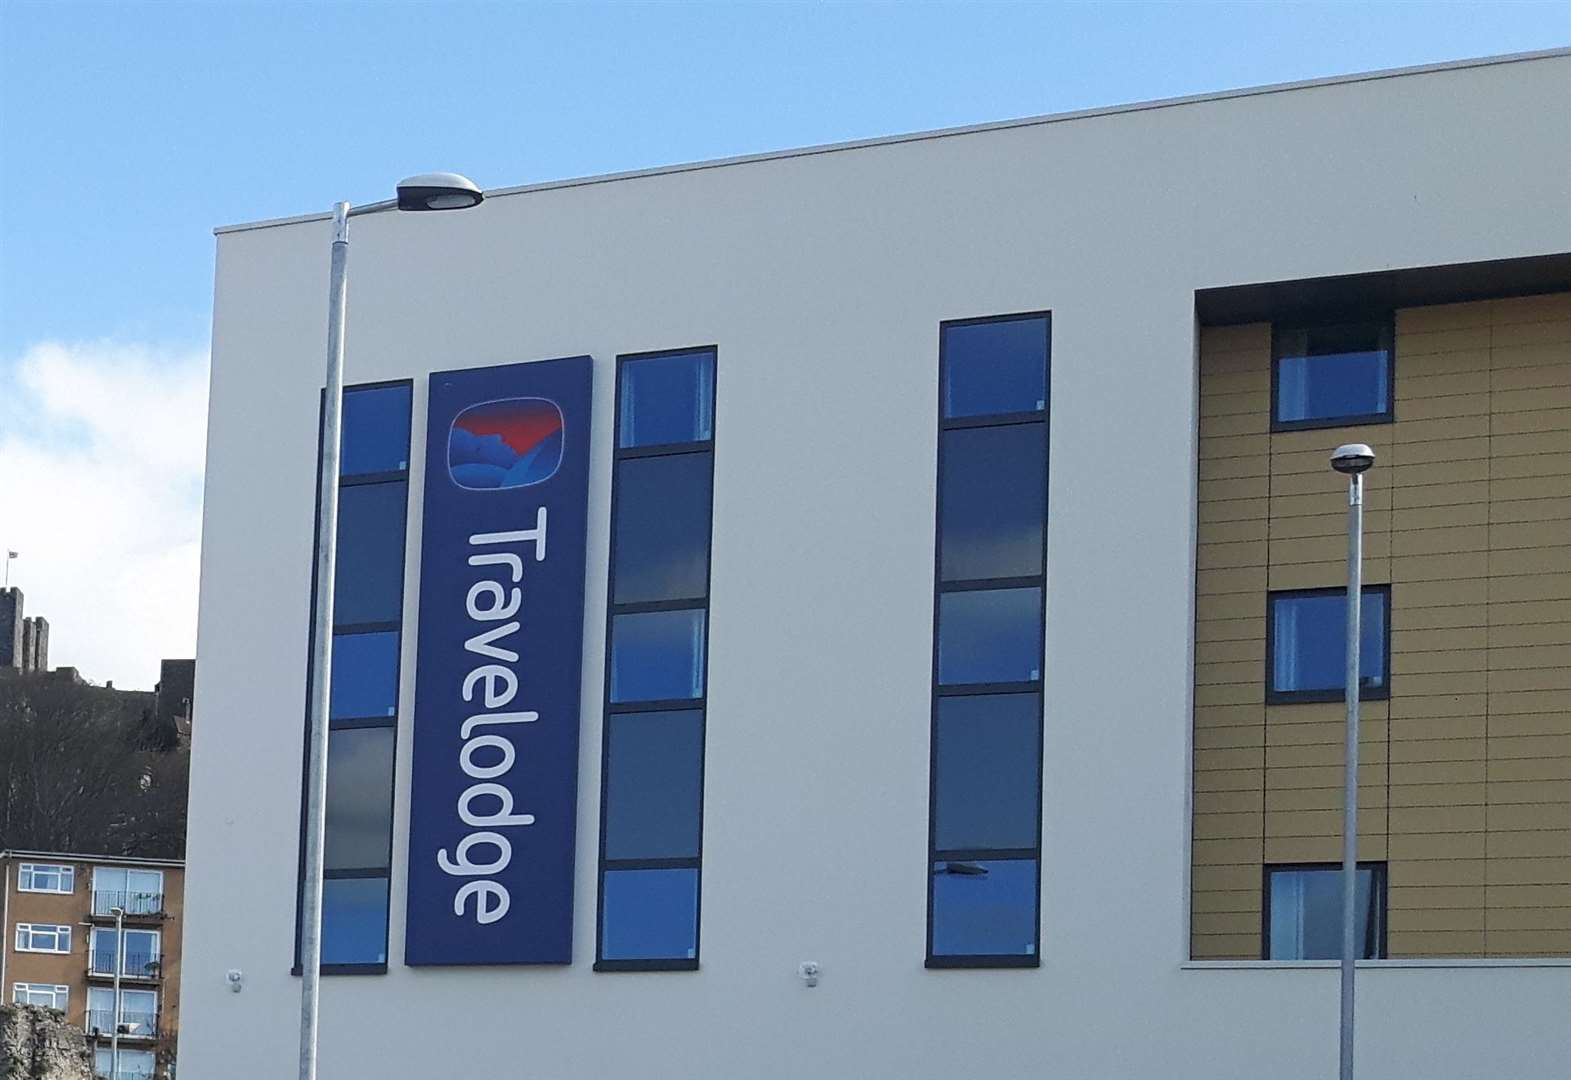 Discovery Park Travelodge agreed